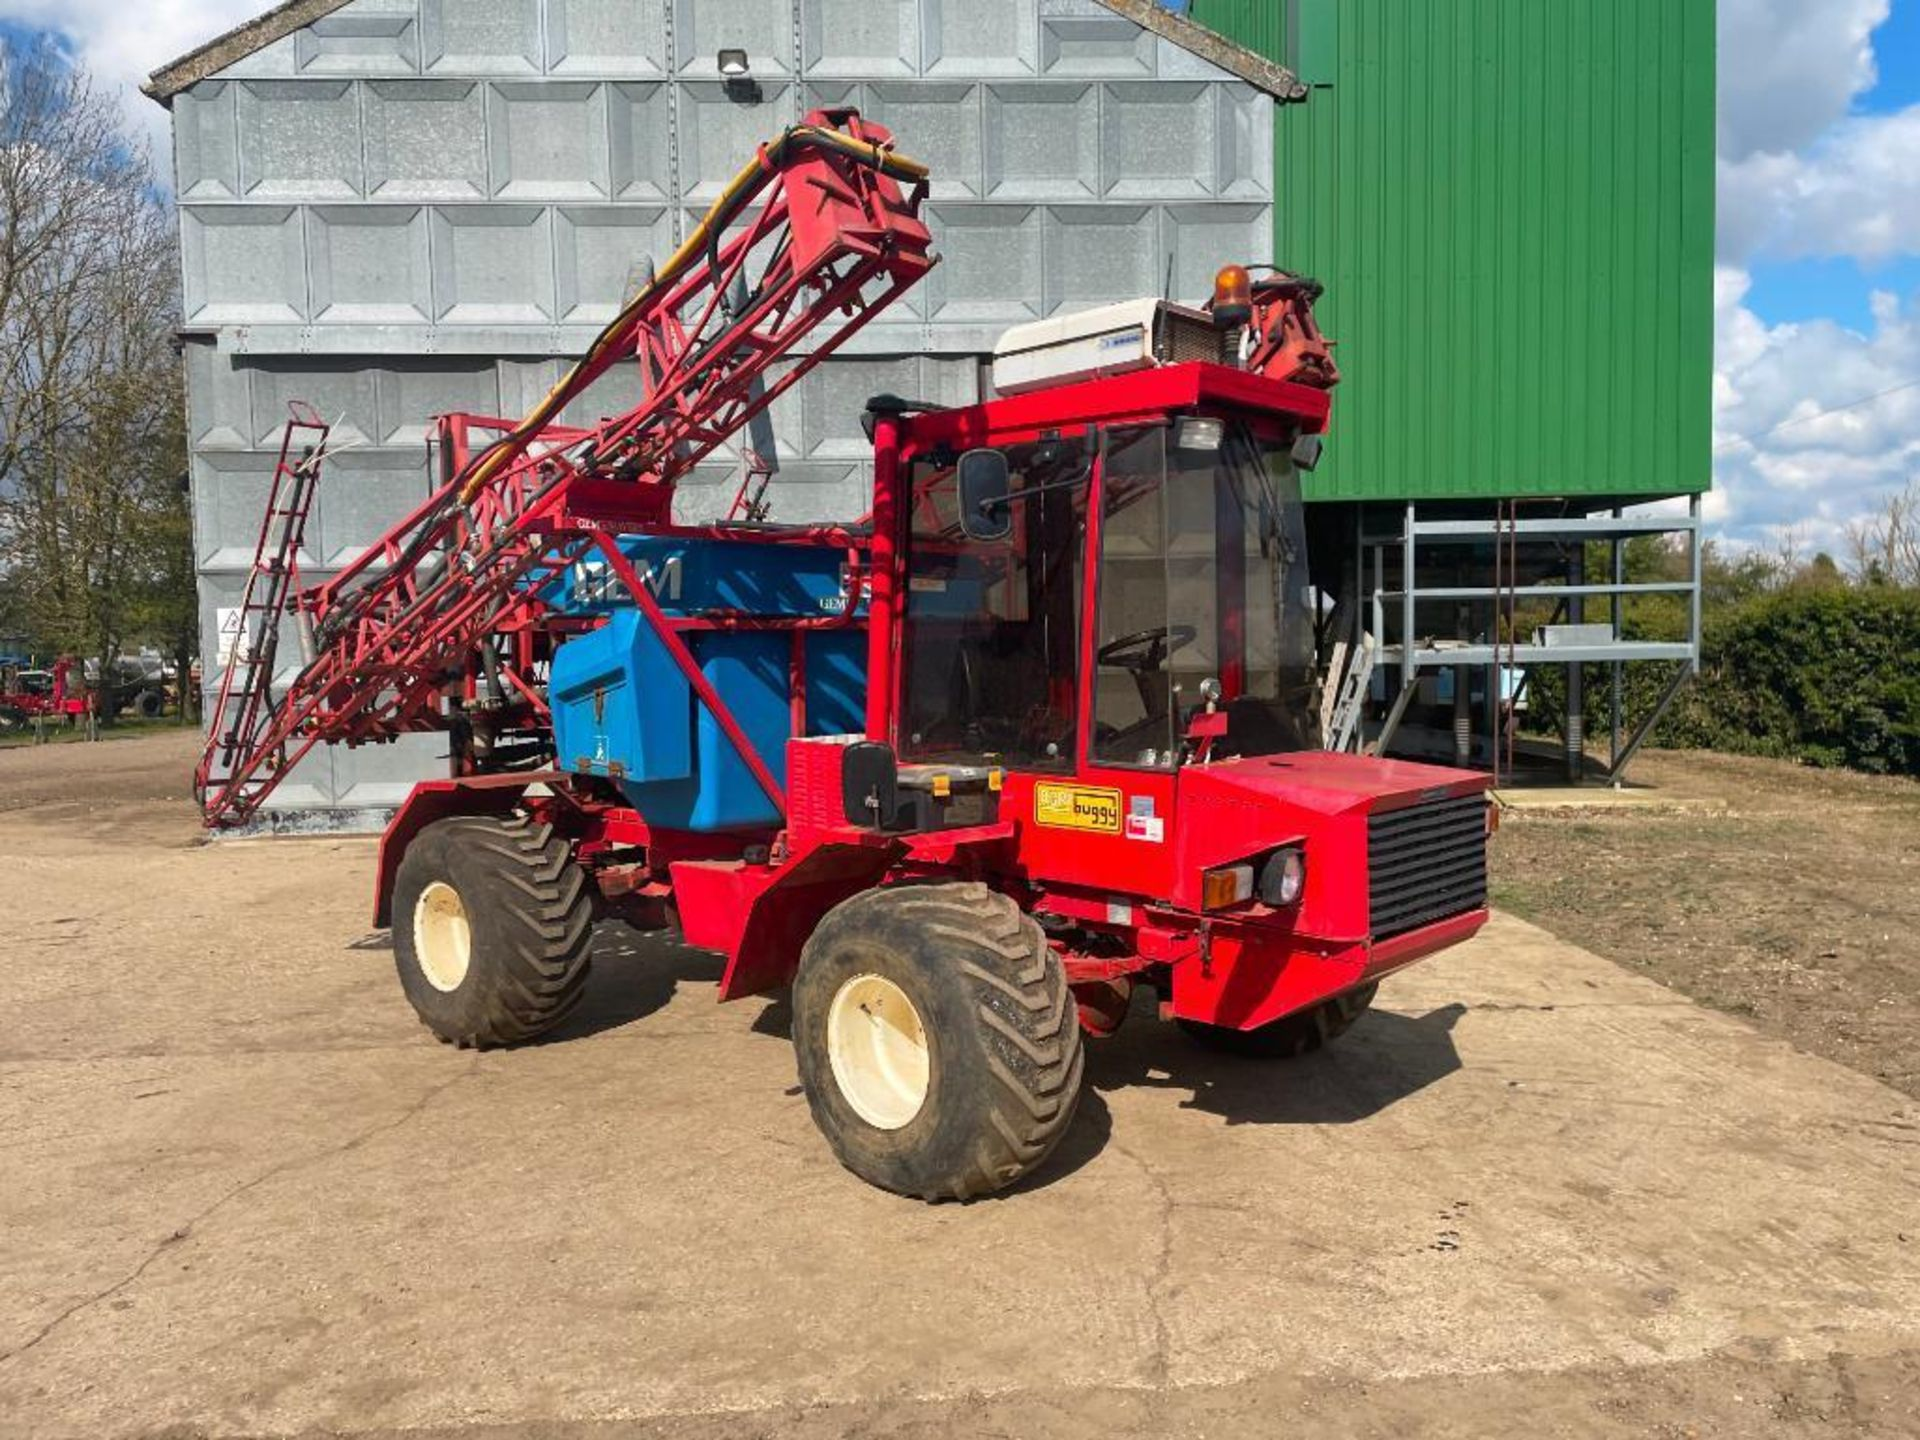 1995 Frazier Agri-Buggy SD with GEM 24m self propelled sprayer, 1500l tank on 38x20.00-16 wheels and - Image 4 of 27